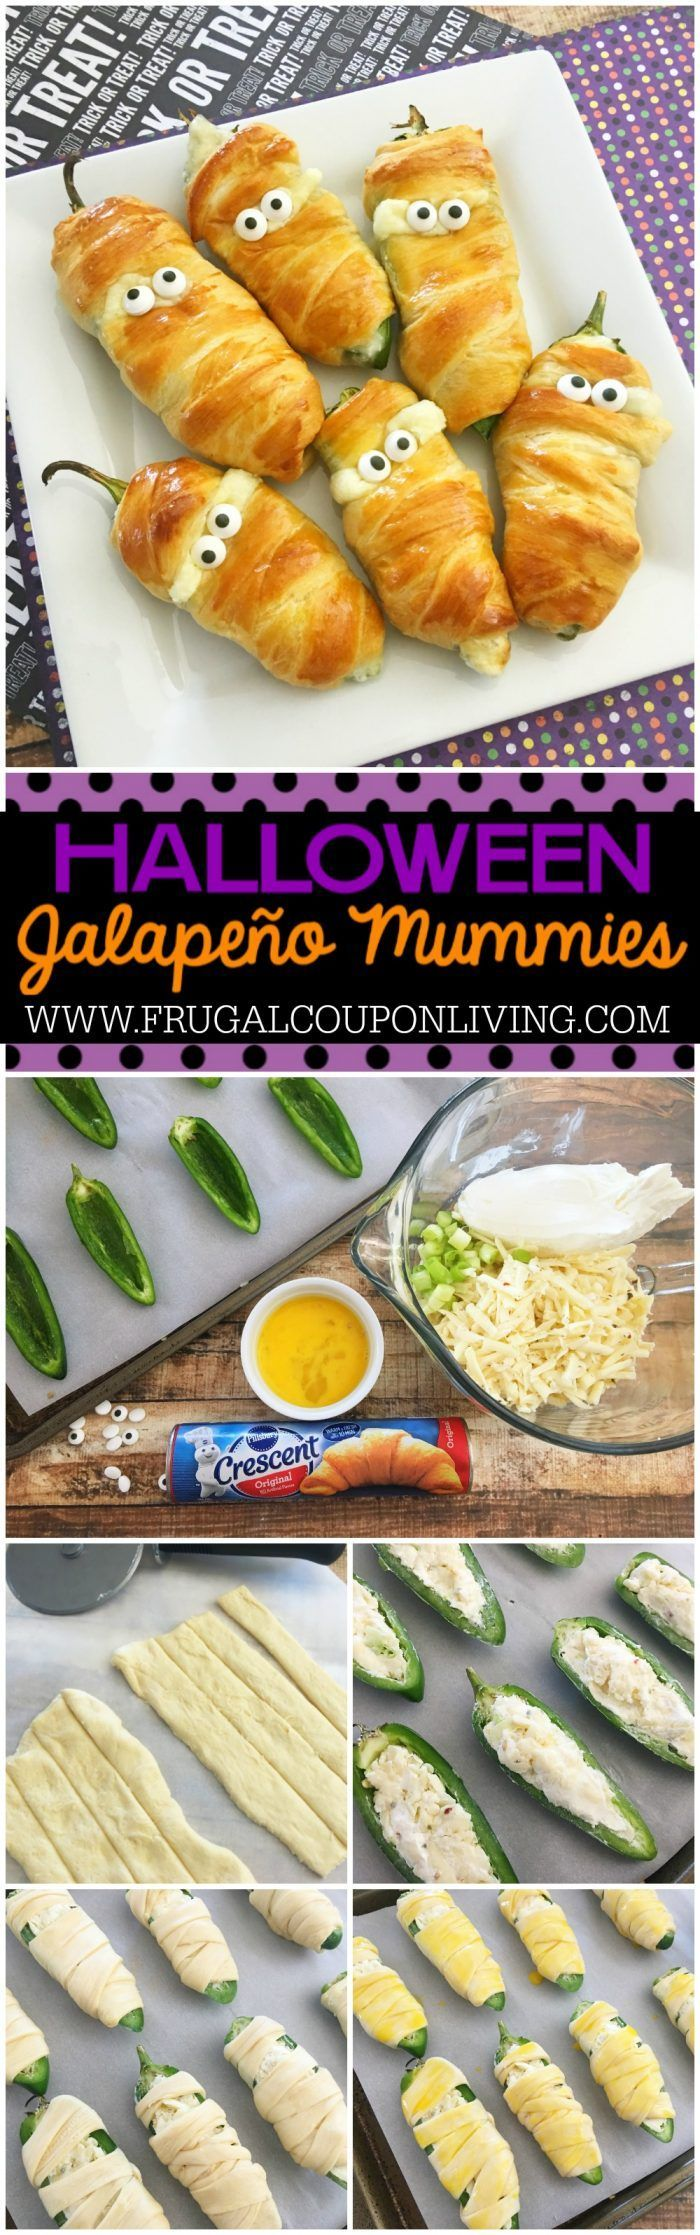 Jalapeño Popper Mummies - a Halloween Food Craft on Frugal Coupon Living plus additional Halloween food crafts for kids and adults.